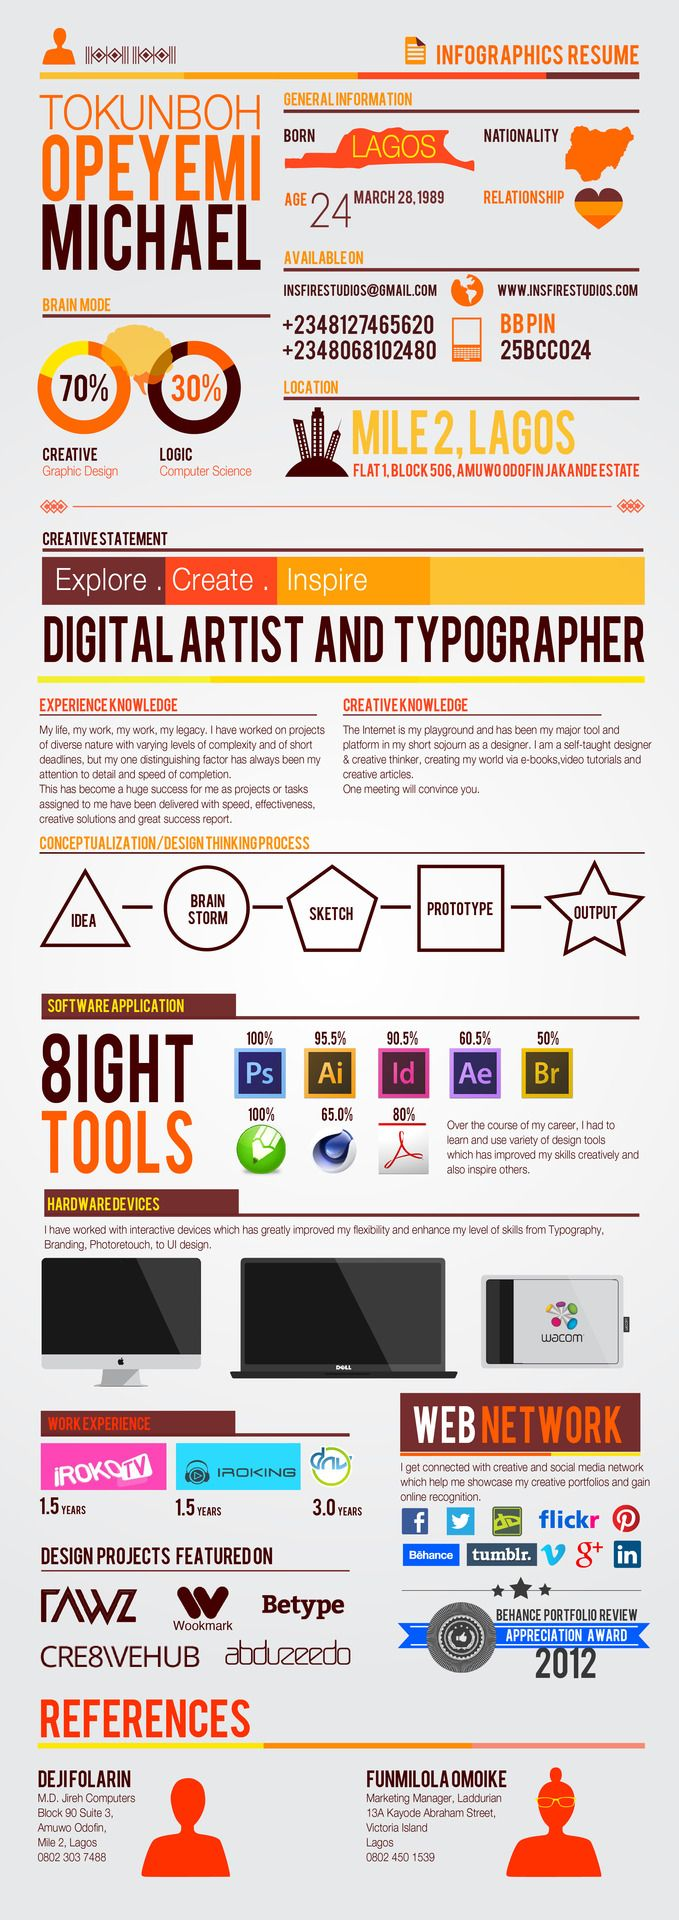 Opposenewapstandardsus  Remarkable  Ideas About Infographic Resume On Pinterest  My Portfolio  With Excellent  Ideas About Infographic Resume On Pinterest  My Portfolio Resume And Resume Design With Extraordinary Best Resume Template Free Also Treasury Analyst Resume In Addition Profile In A Resume And Flight Attendant Resume Sample As Well As Examples Of Resume Summaries Additionally Actor Resume Example From Pinterestcom With Opposenewapstandardsus  Excellent  Ideas About Infographic Resume On Pinterest  My Portfolio  With Extraordinary  Ideas About Infographic Resume On Pinterest  My Portfolio Resume And Resume Design And Remarkable Best Resume Template Free Also Treasury Analyst Resume In Addition Profile In A Resume From Pinterestcom